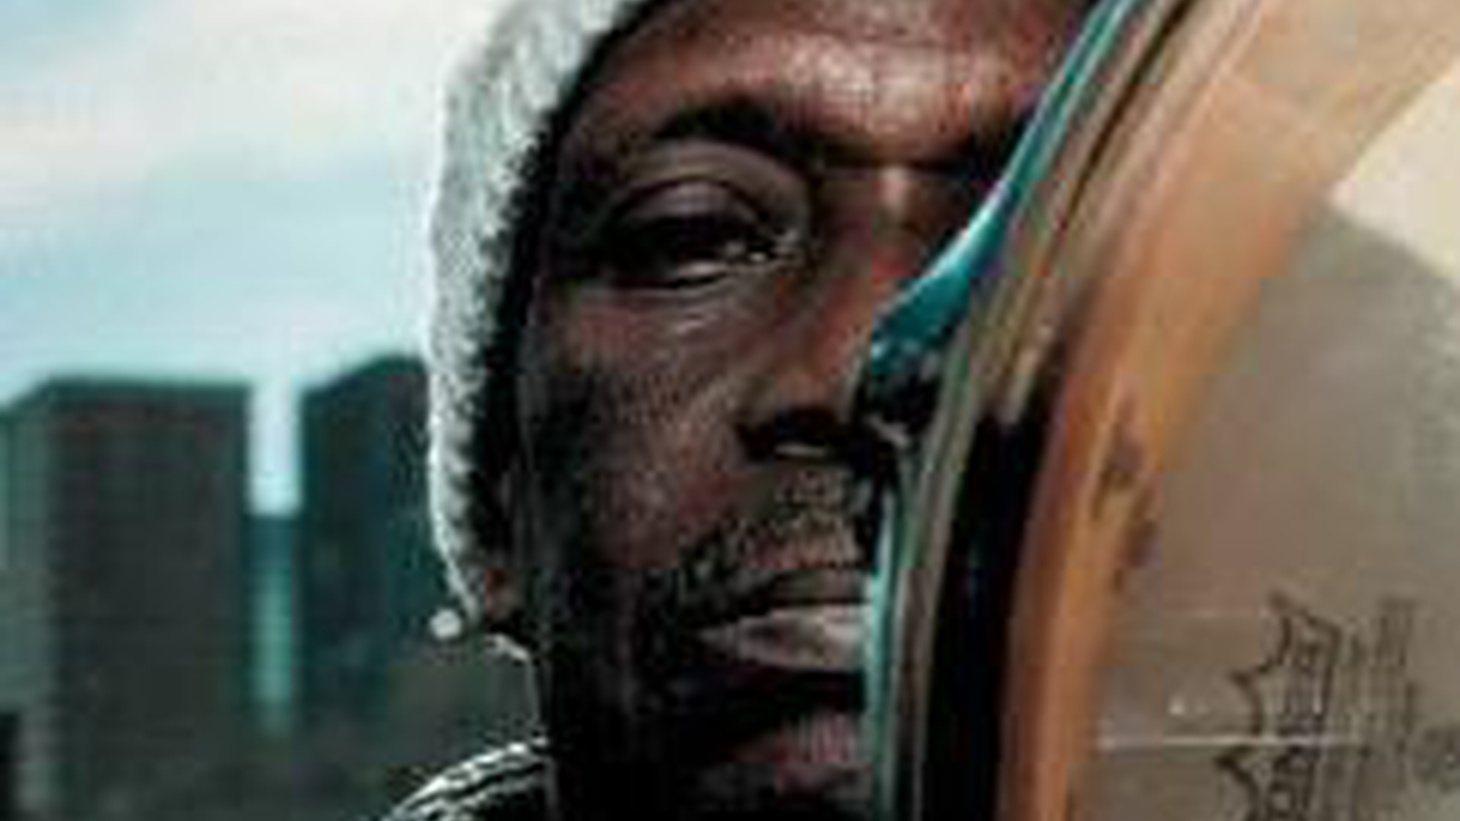 Tony Allen, the man who put the beat in Afro Beat with legendary Fela Kuti  & Afrika 70, performs live in the 11 o'clock hour with his group Afro-Beat 2000.